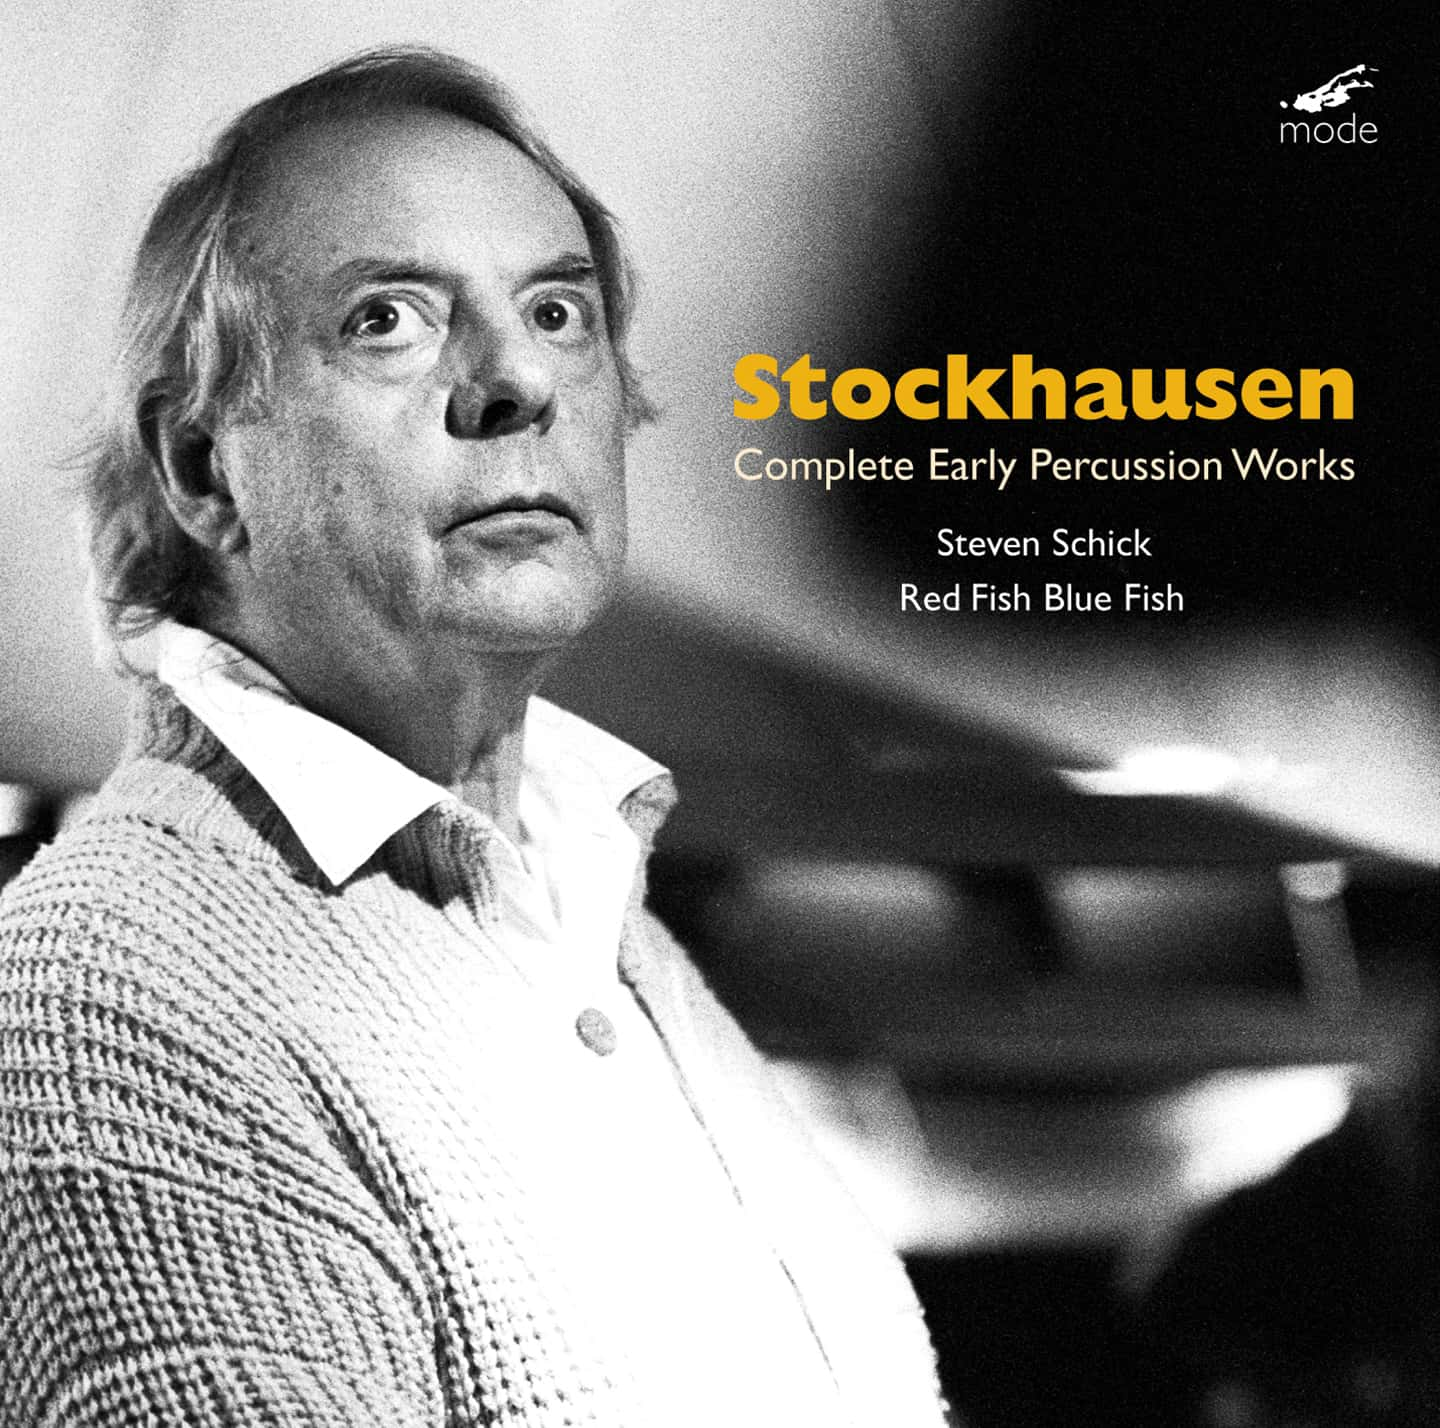 Complete Early Percussion Works – CD